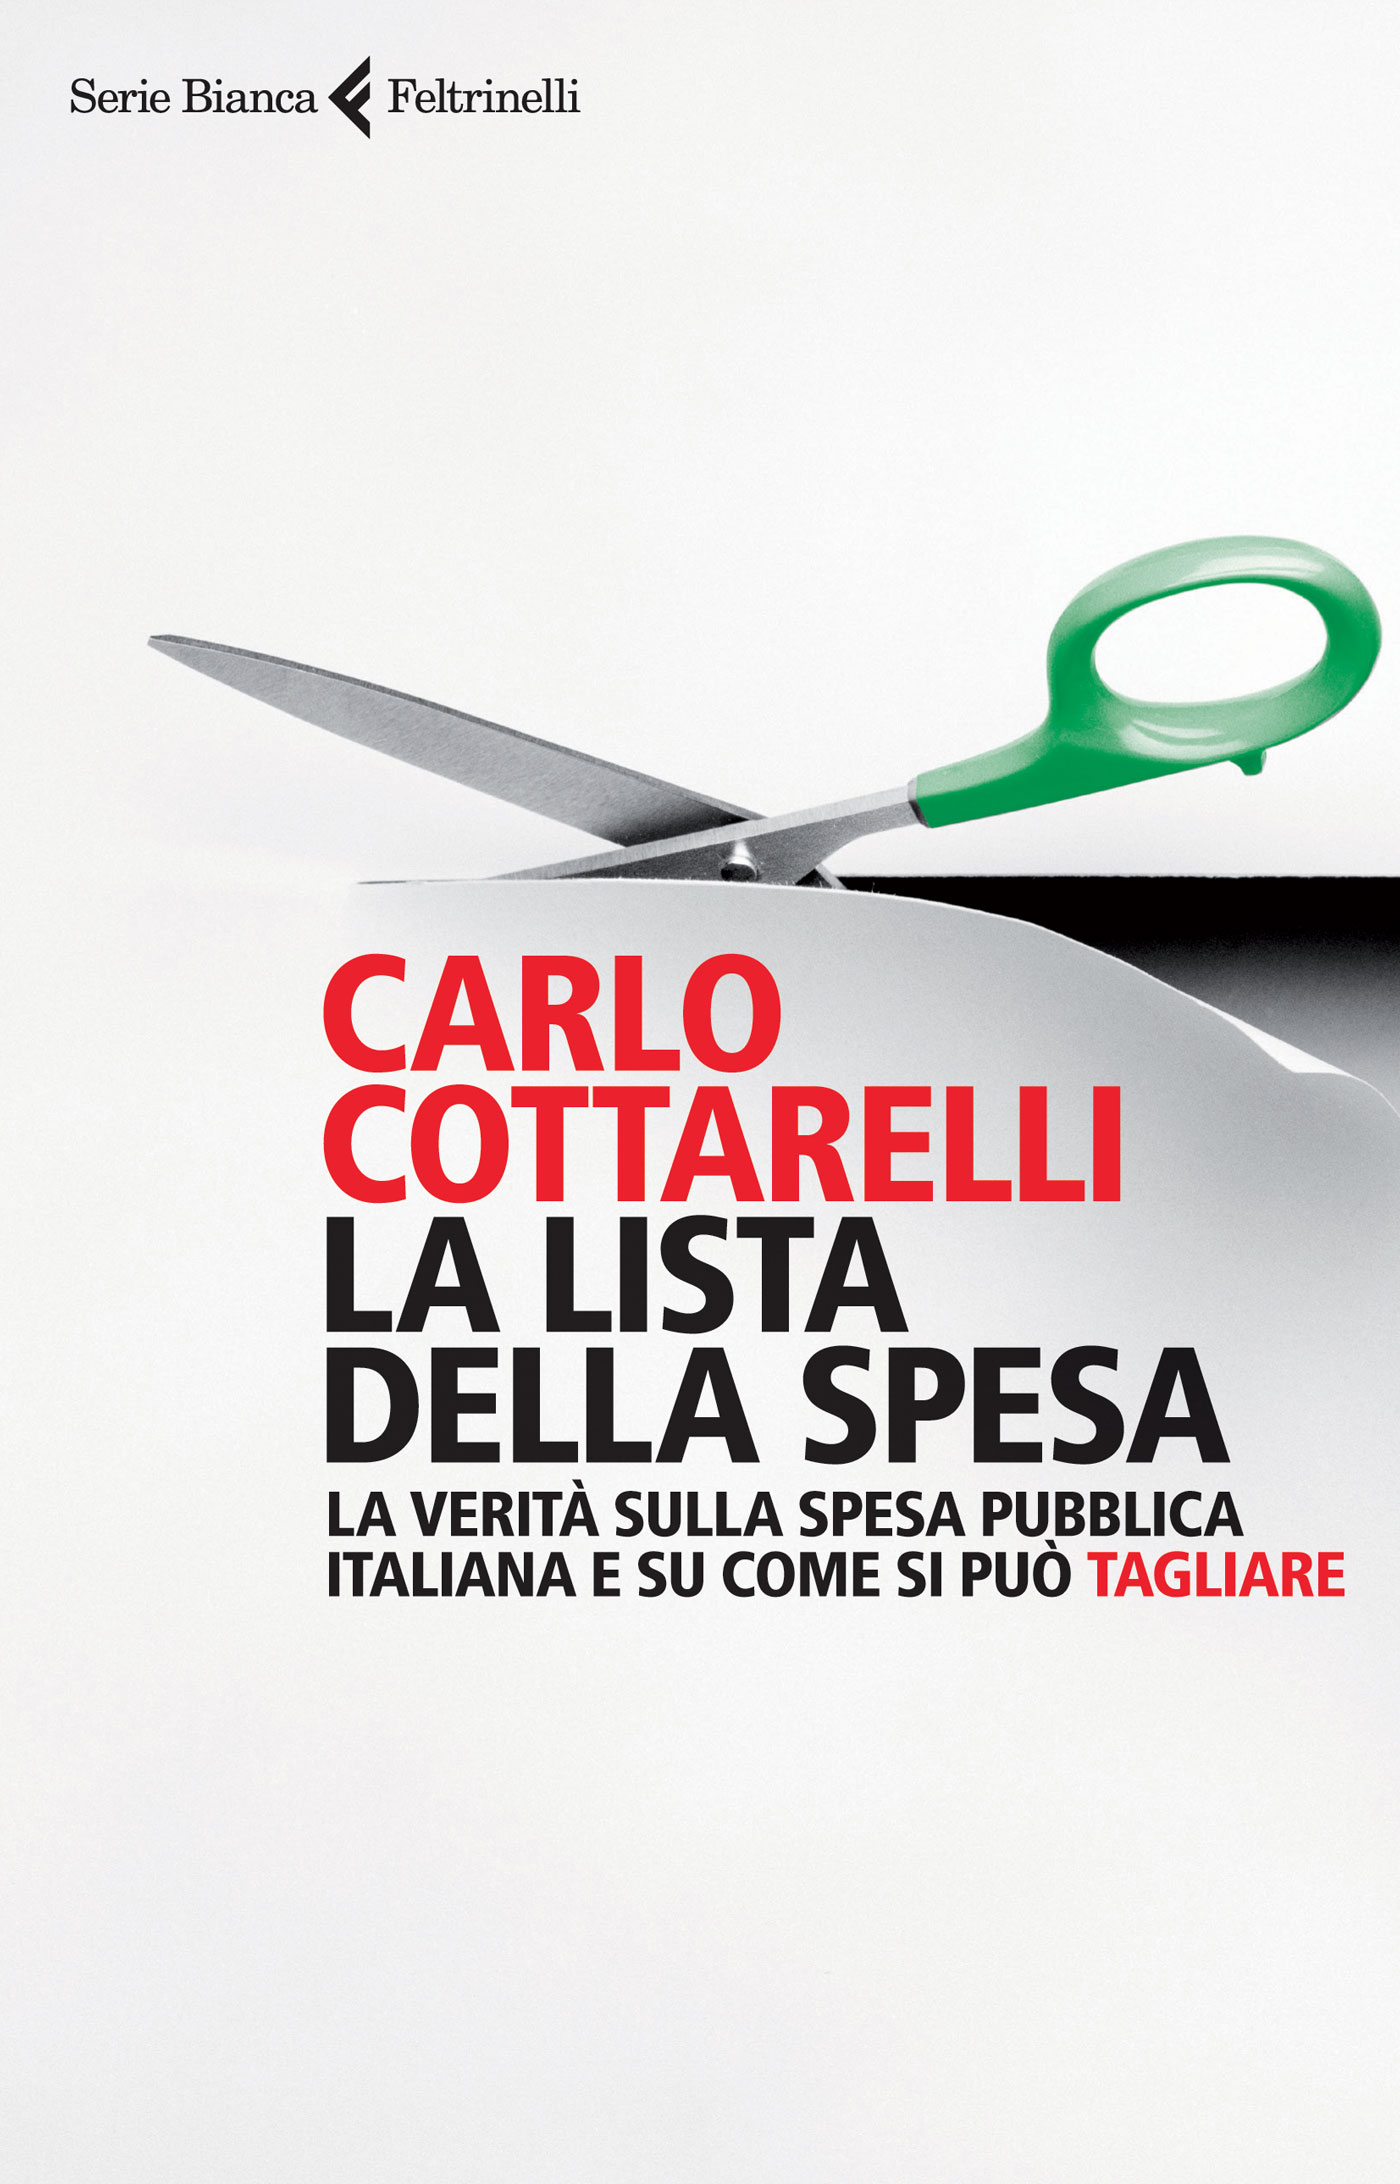 http://www.feltrinellieditore.it/media/copertina/quarta/15/9788807172915_quarta.jpg